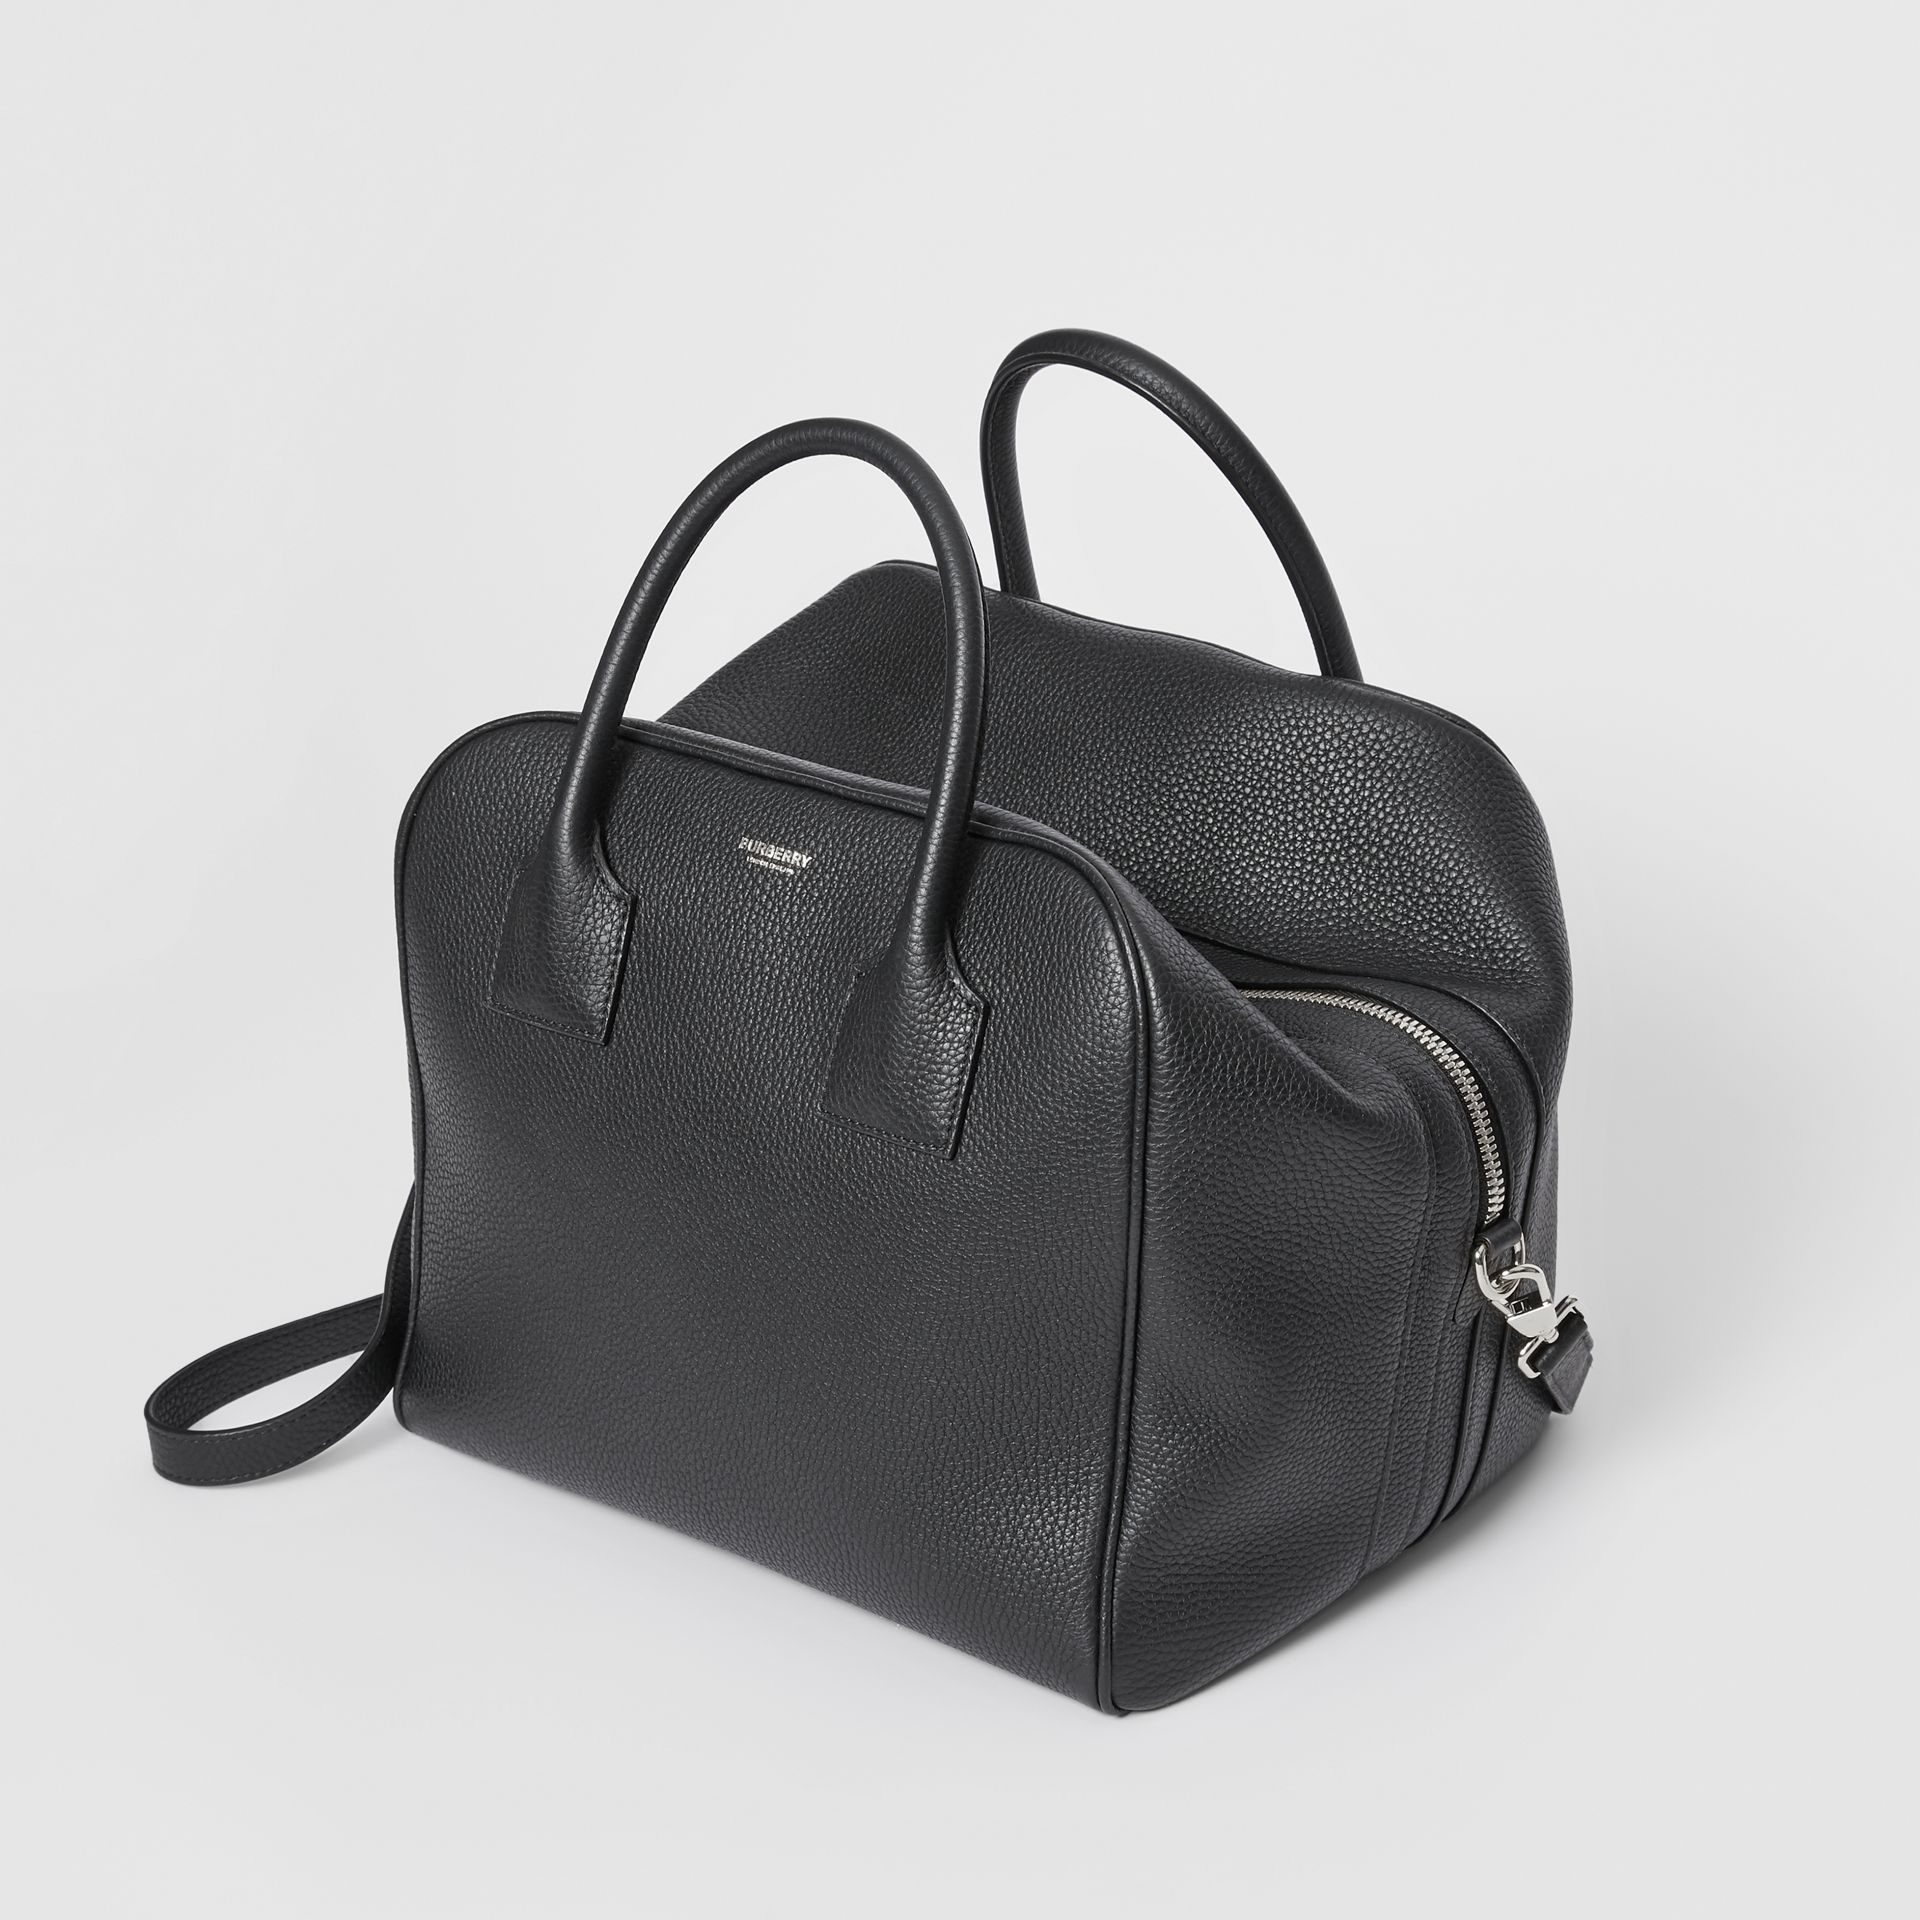 Medium Leather Cube Bag in Black - Women | Burberry United Kingdom - gallery image 3